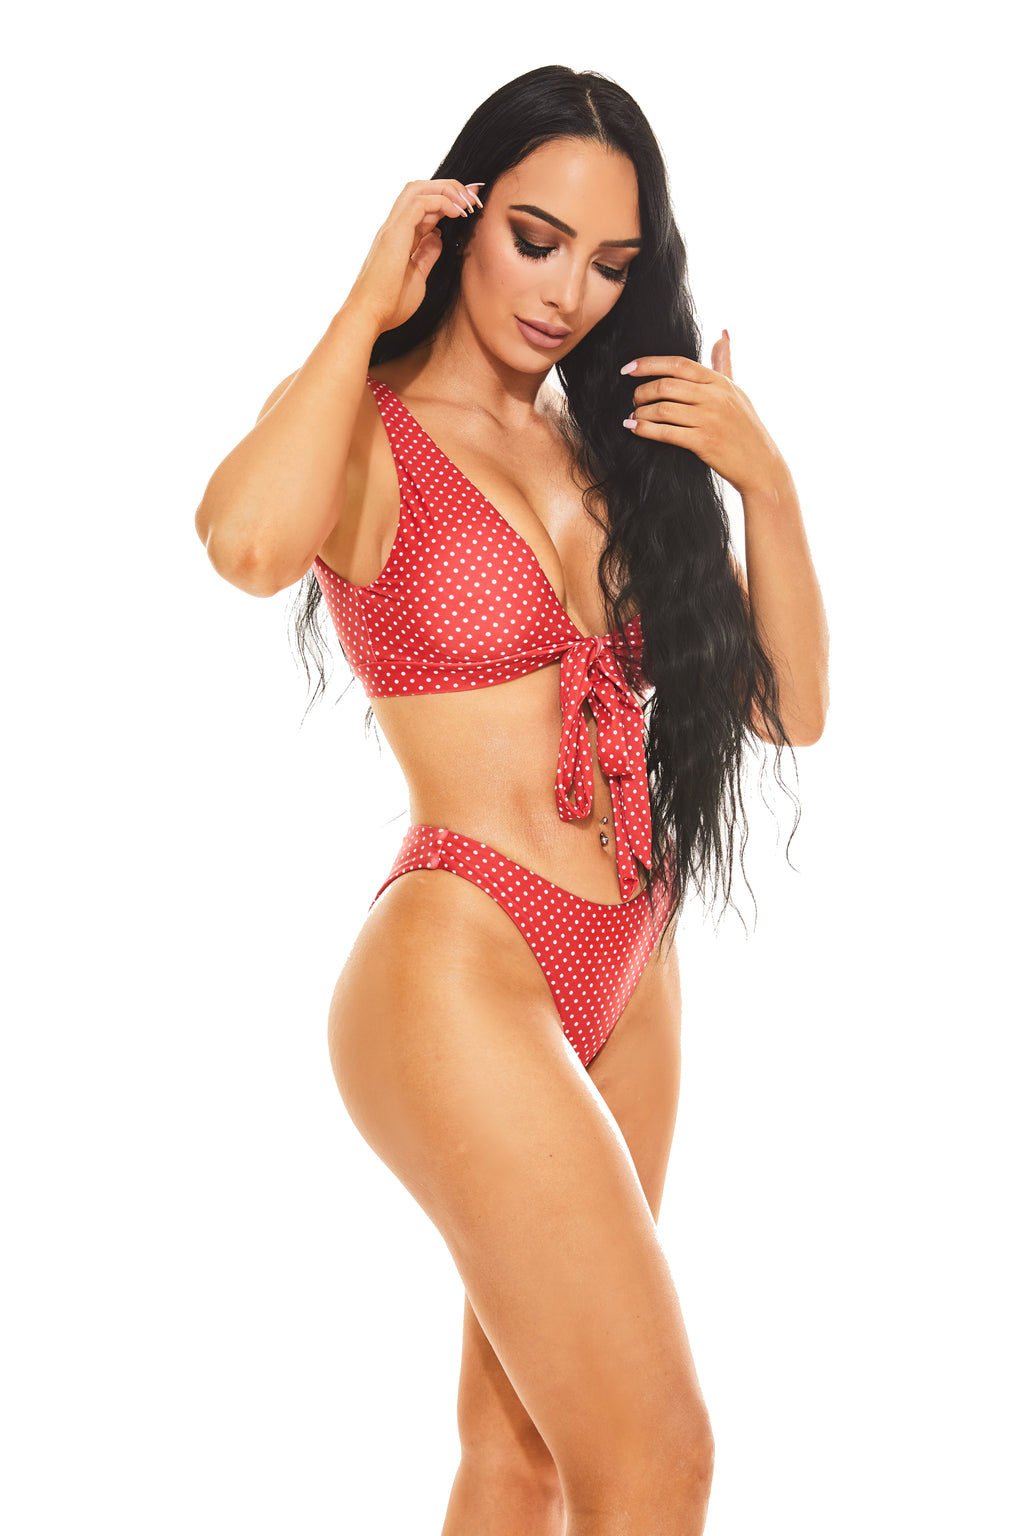 POLKA DOT FRENZY BIKINI - Red - www.prettyboutique.com